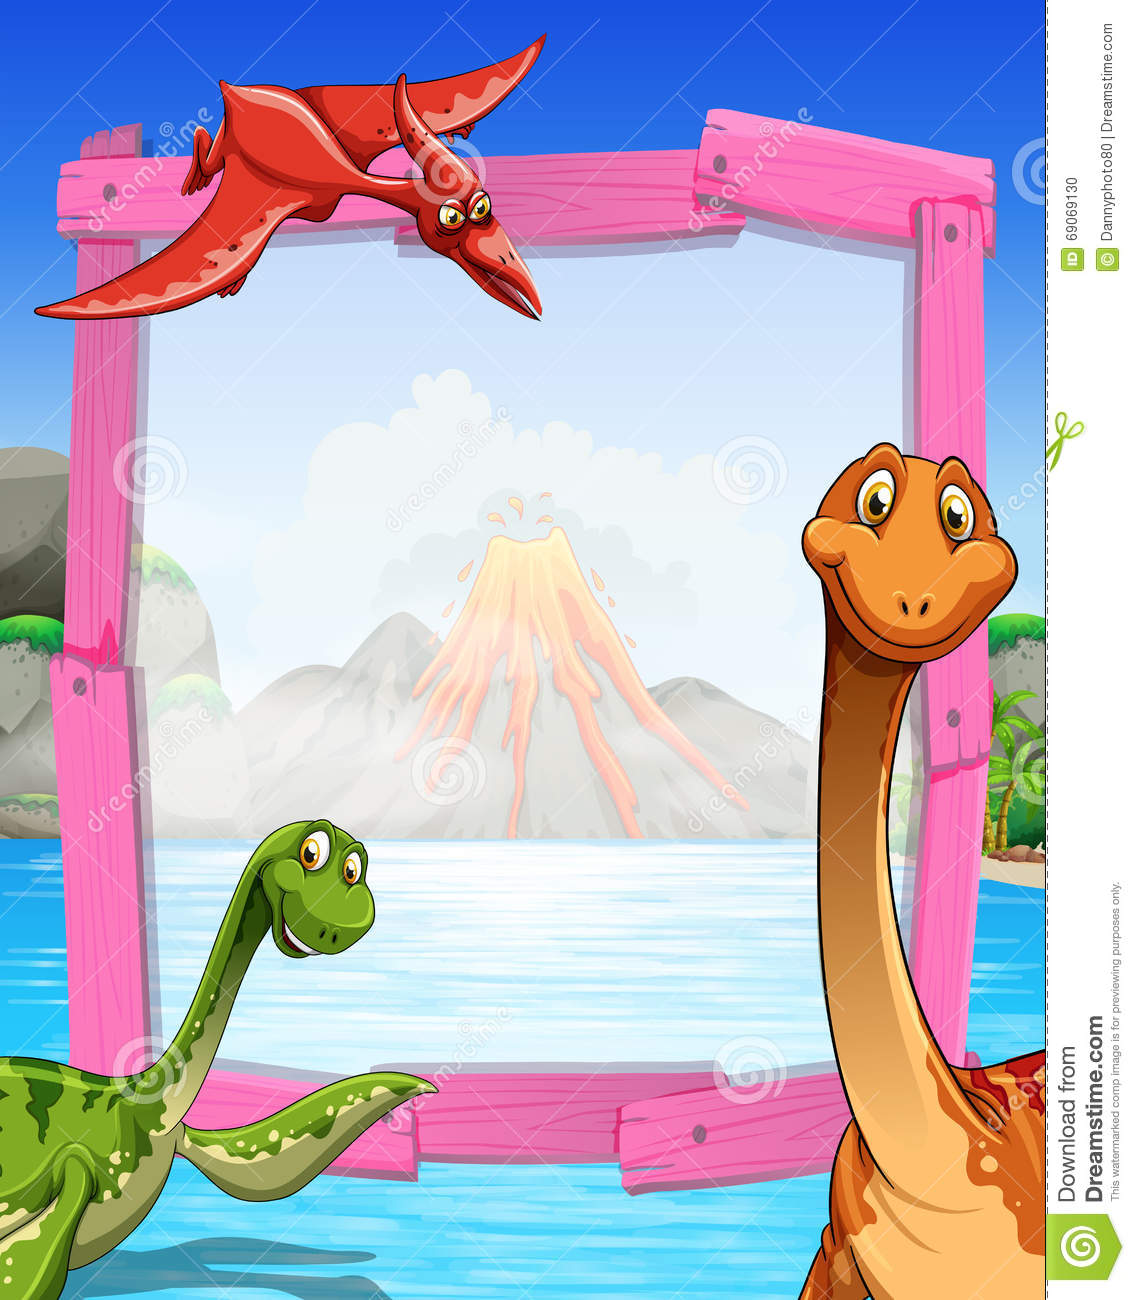 frame design with dinosaurs at the lake